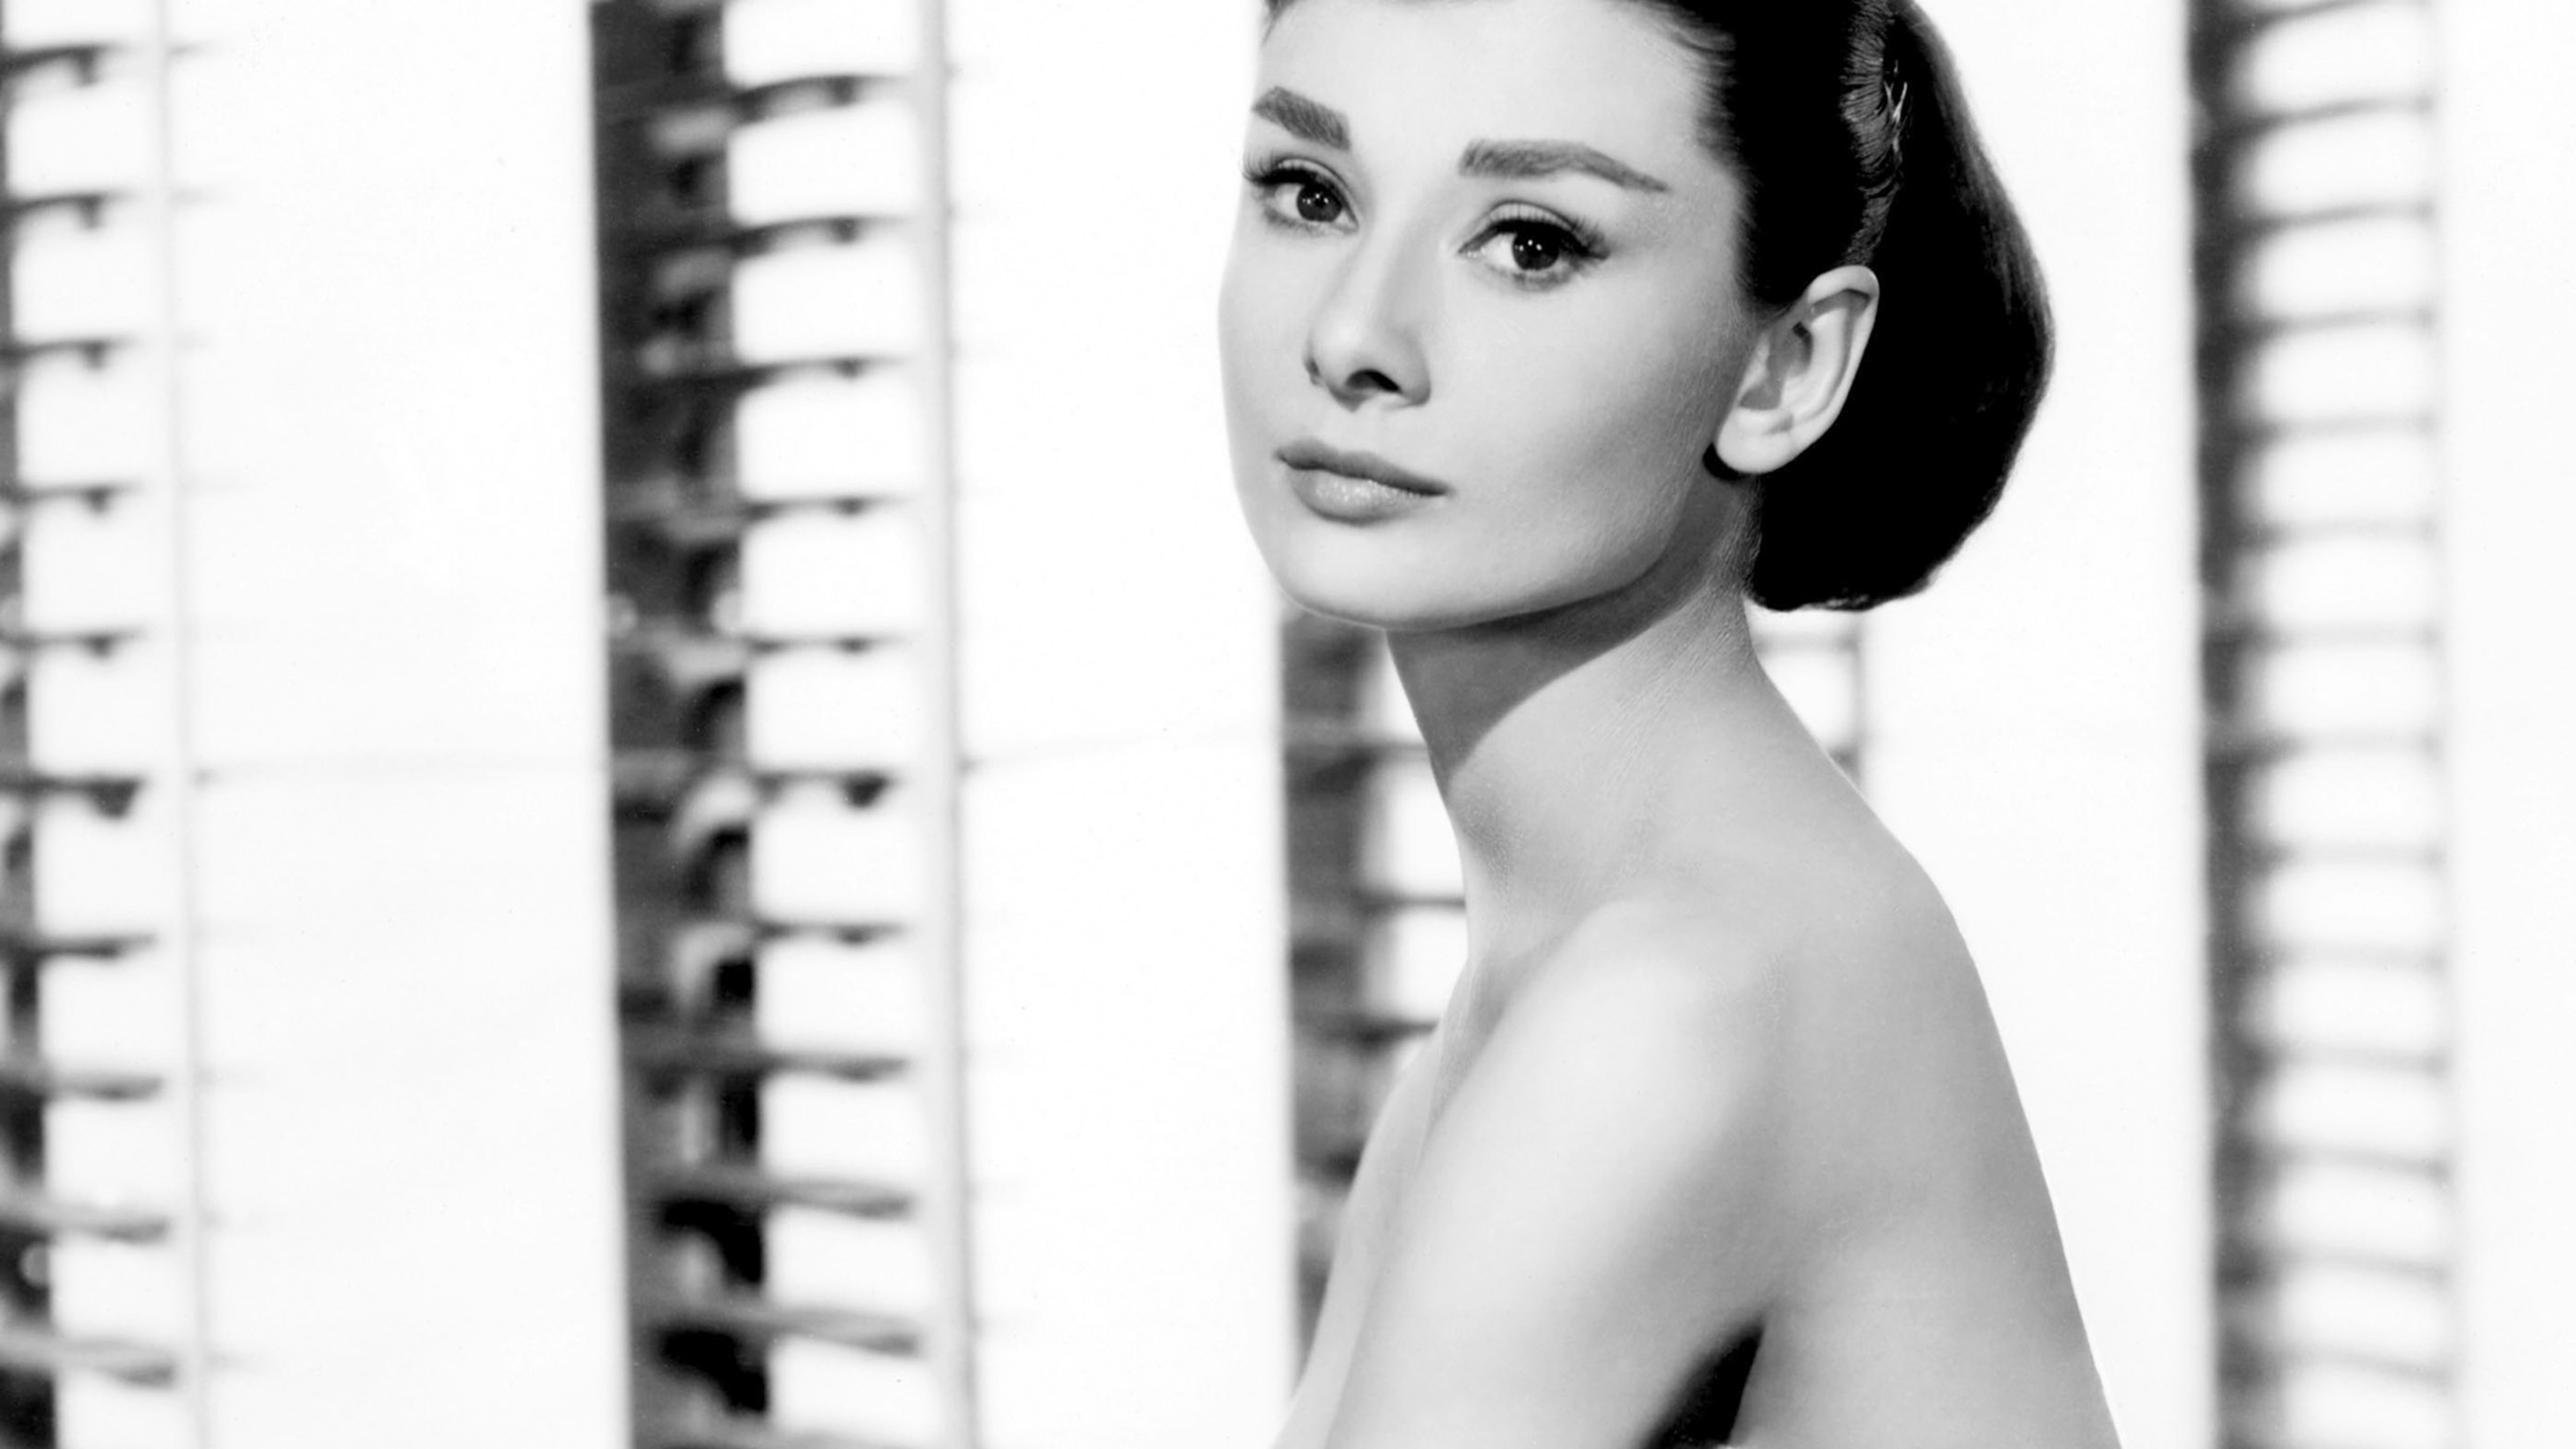 5120x2880 Audrey Hepburn Back And White Hd Wallpaper 5k